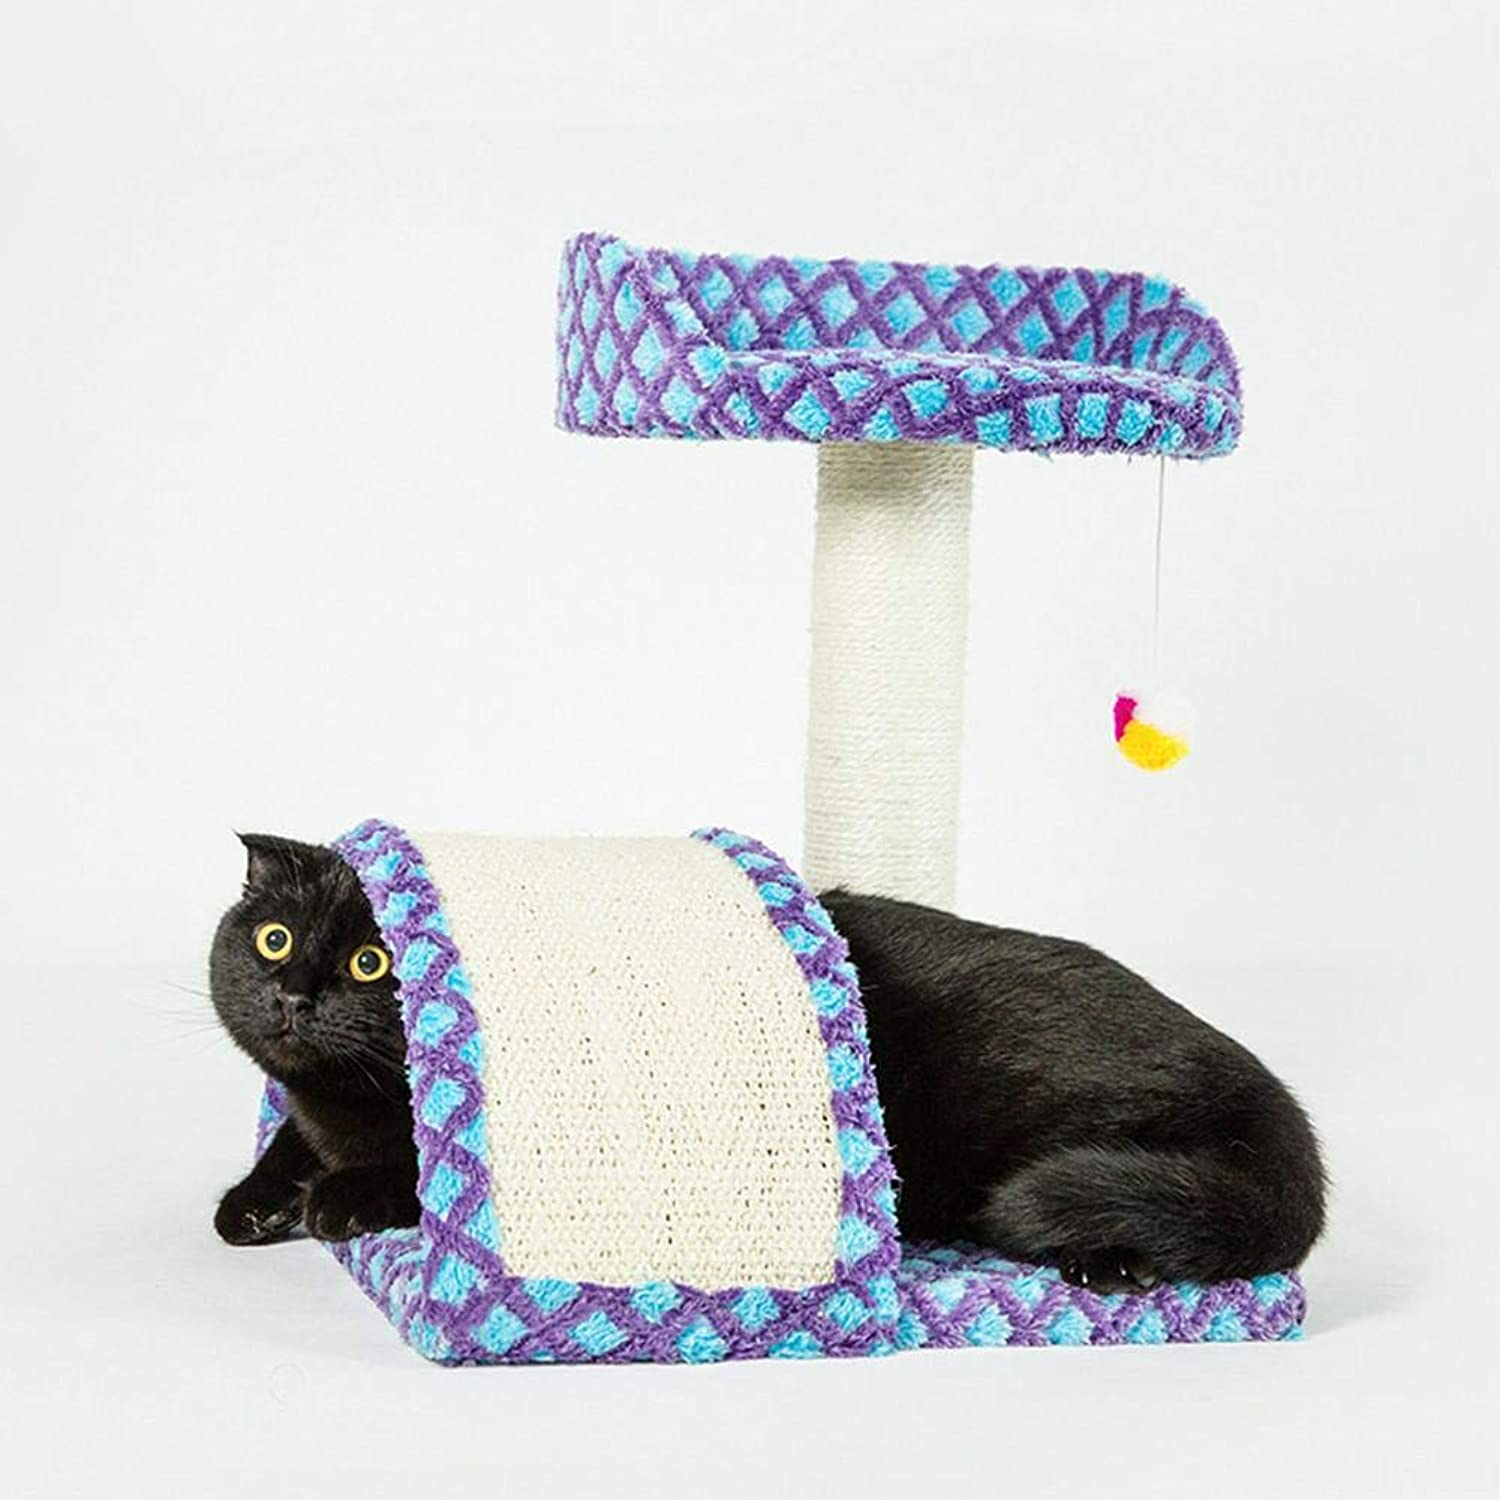 Oddity Pet Toys  Kitten Climbing Frame, Claw Toy, Playing with Small Hanging Ball, Cat Pet Supplies